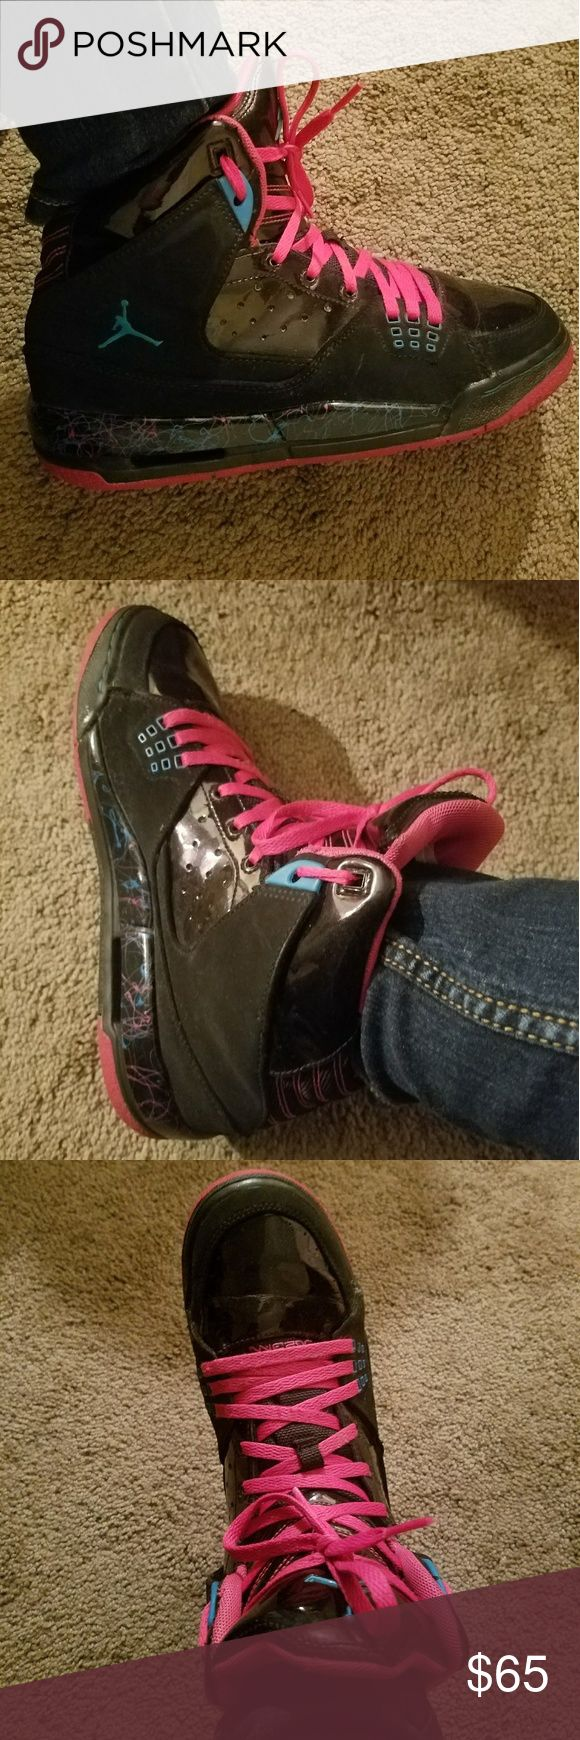 Size 7y pink and black jordans Great condition hot pink and black jordans unisex sneakers Shoes Sneakers